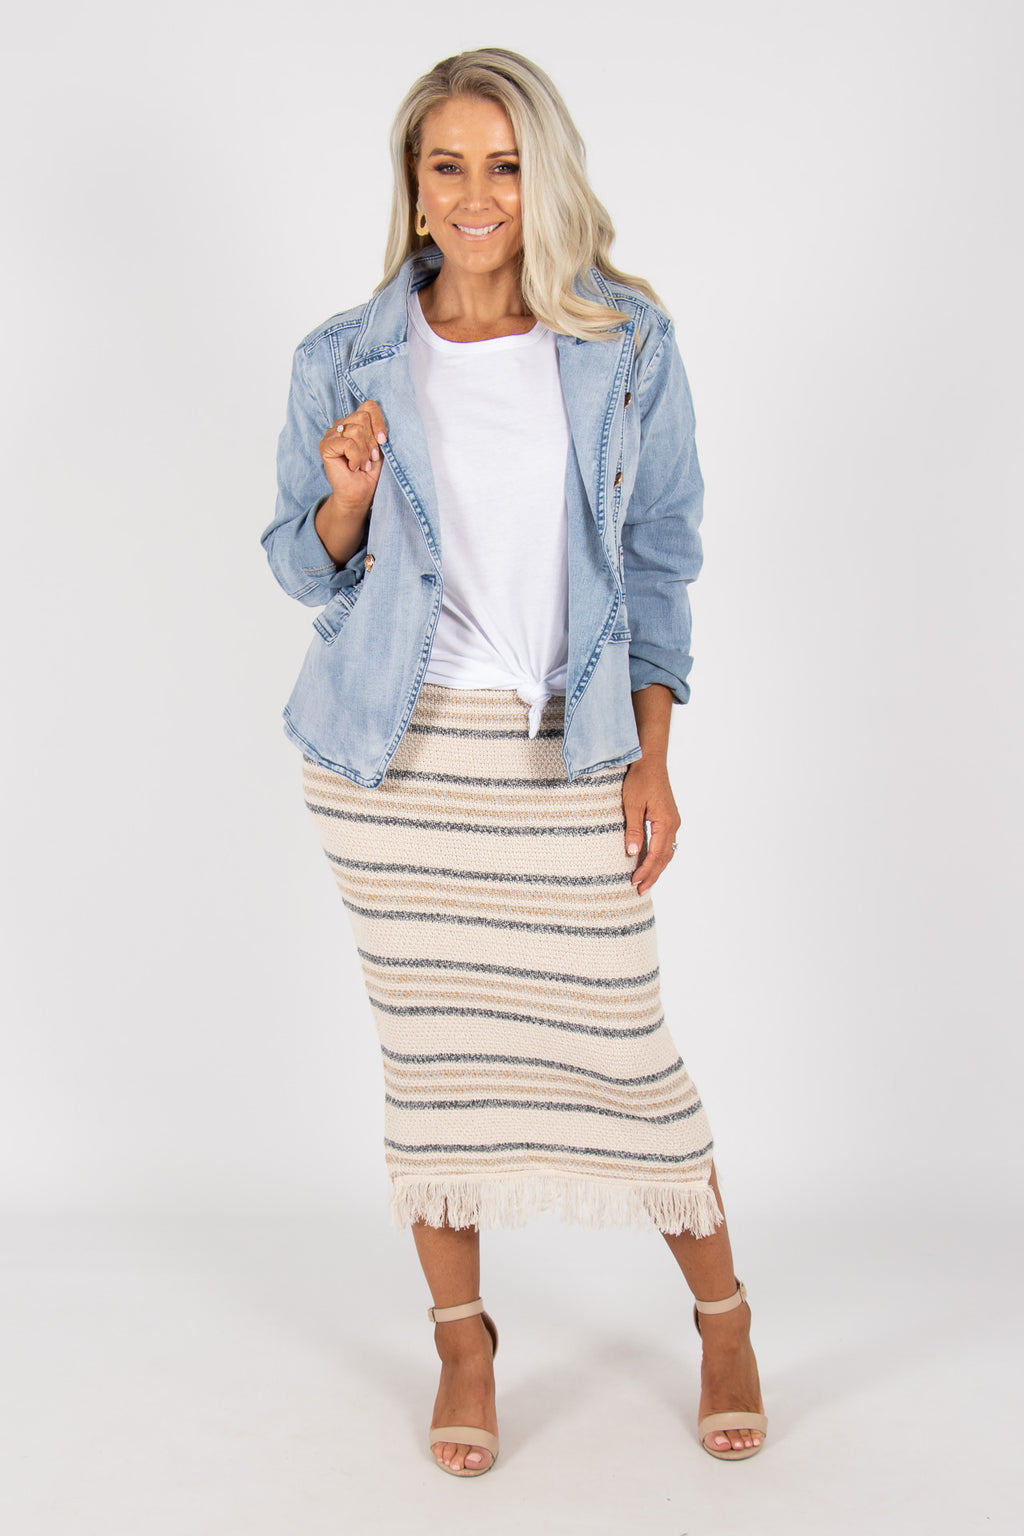 Karanda Knit Skirt in Beige with Blue/Grey stripes